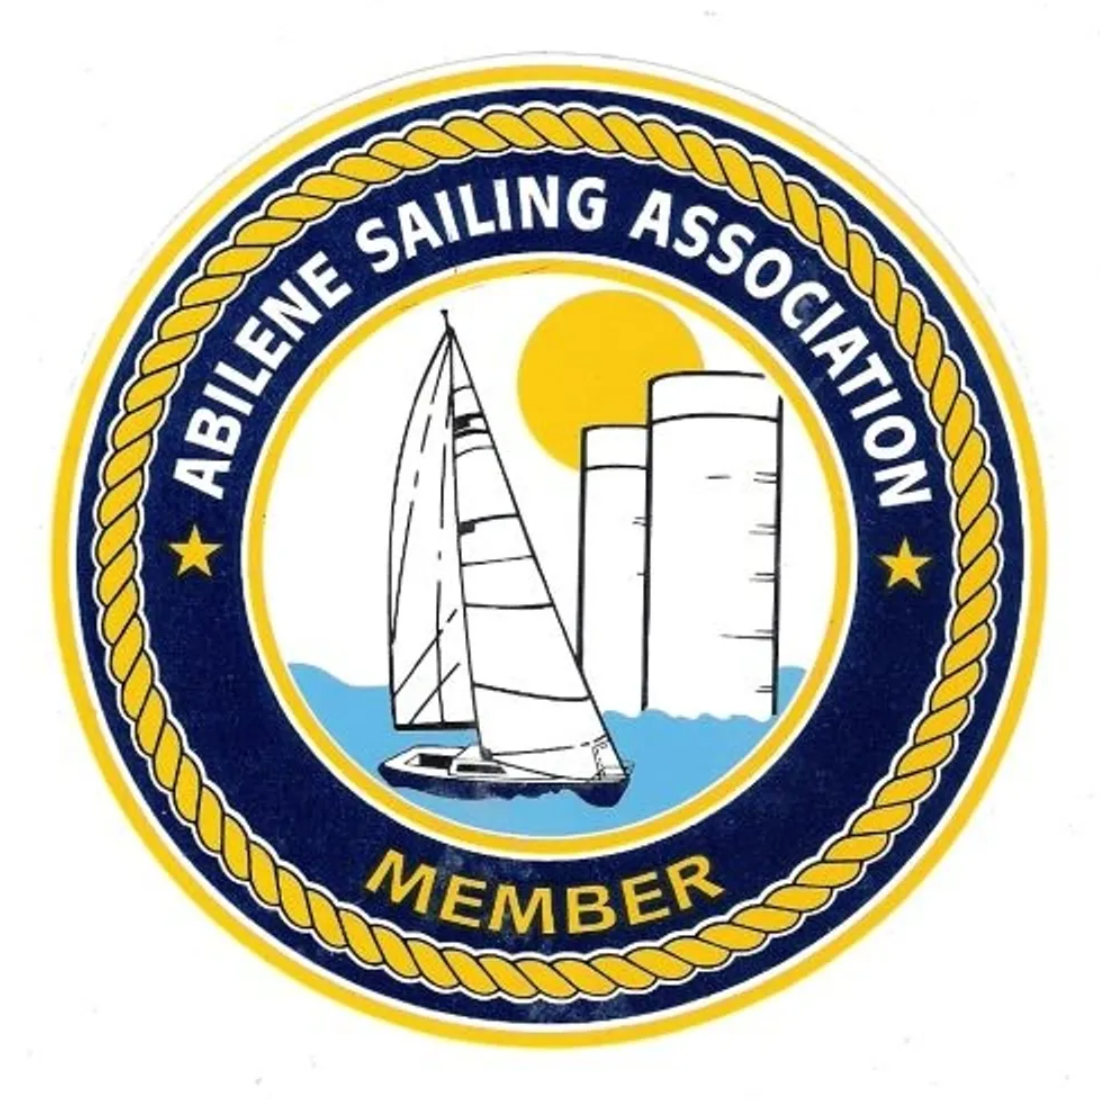 Other-Clubs-AbileneSailingAssociation